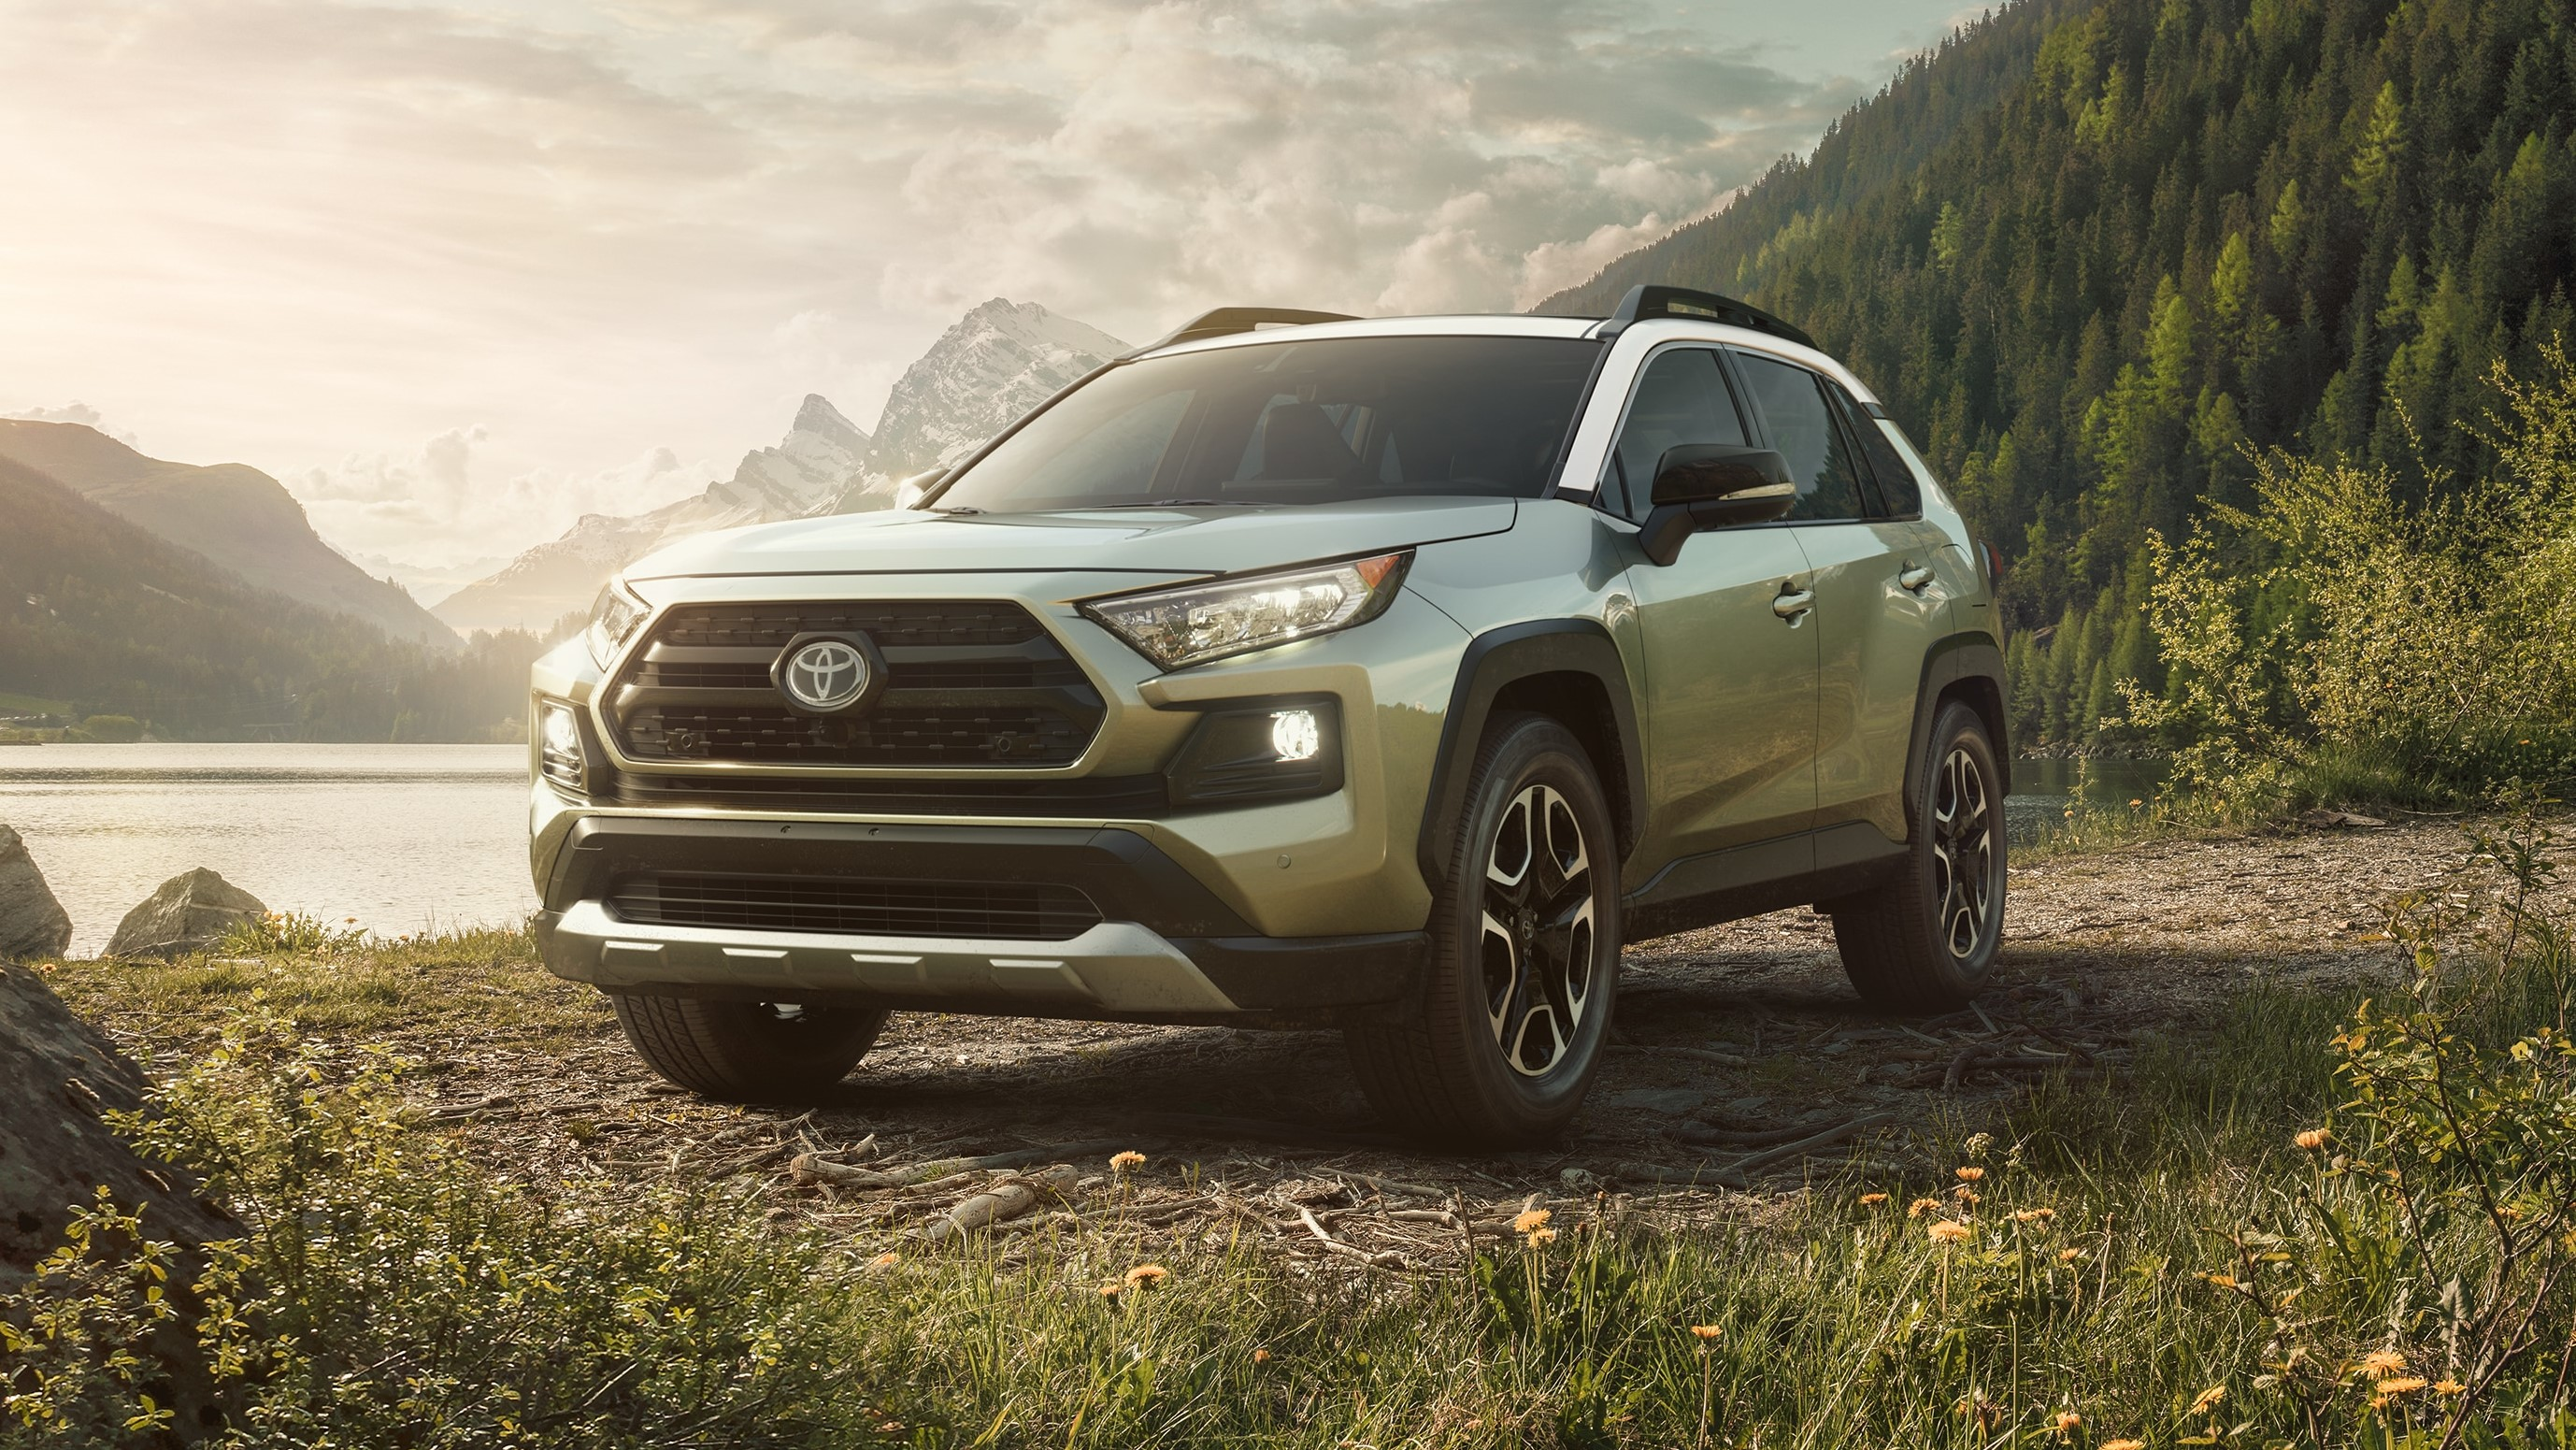 Why Toyota believes 'tough' new hybrid RAV4 will work